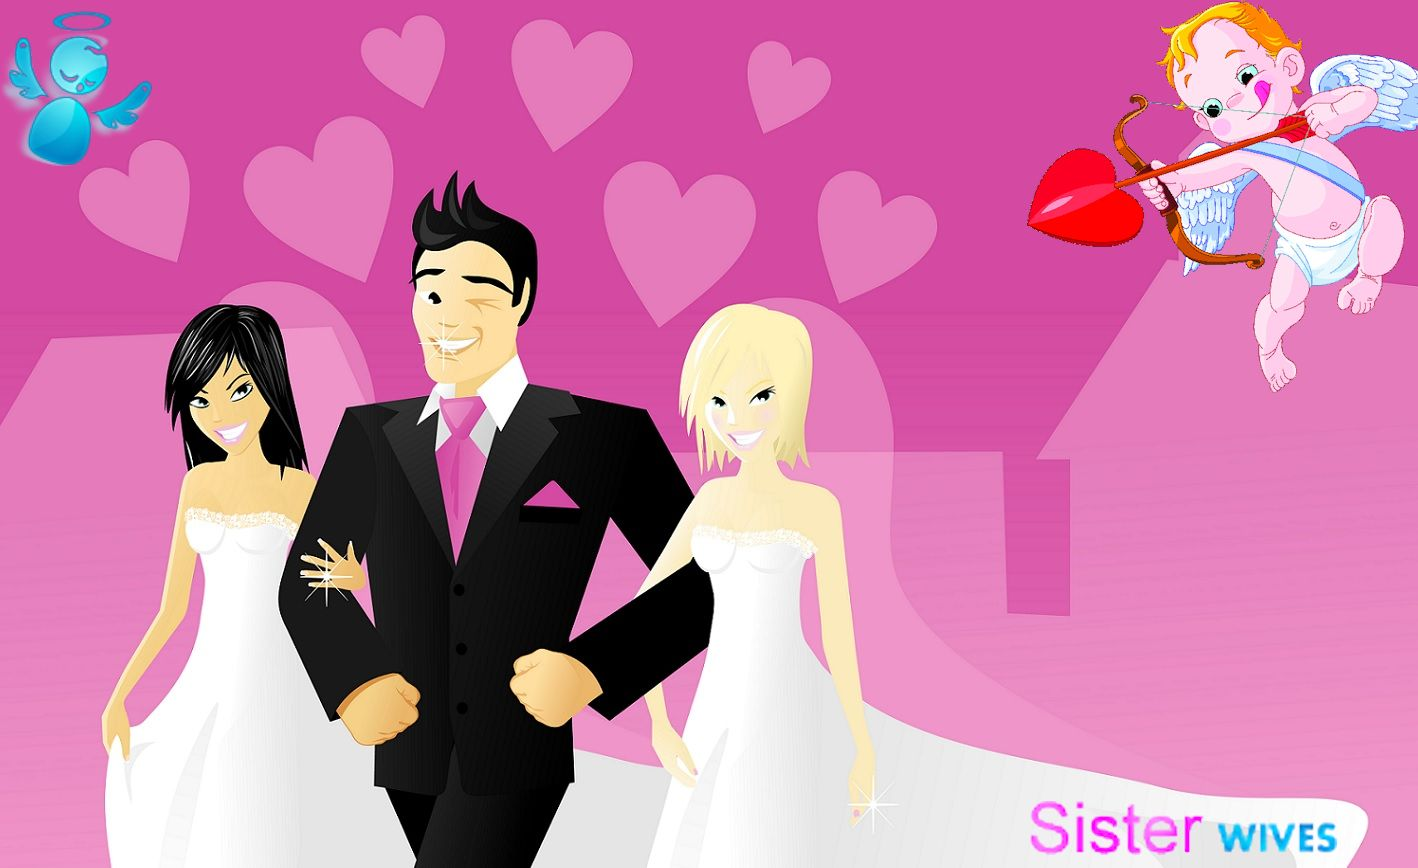 Sisterwives dating